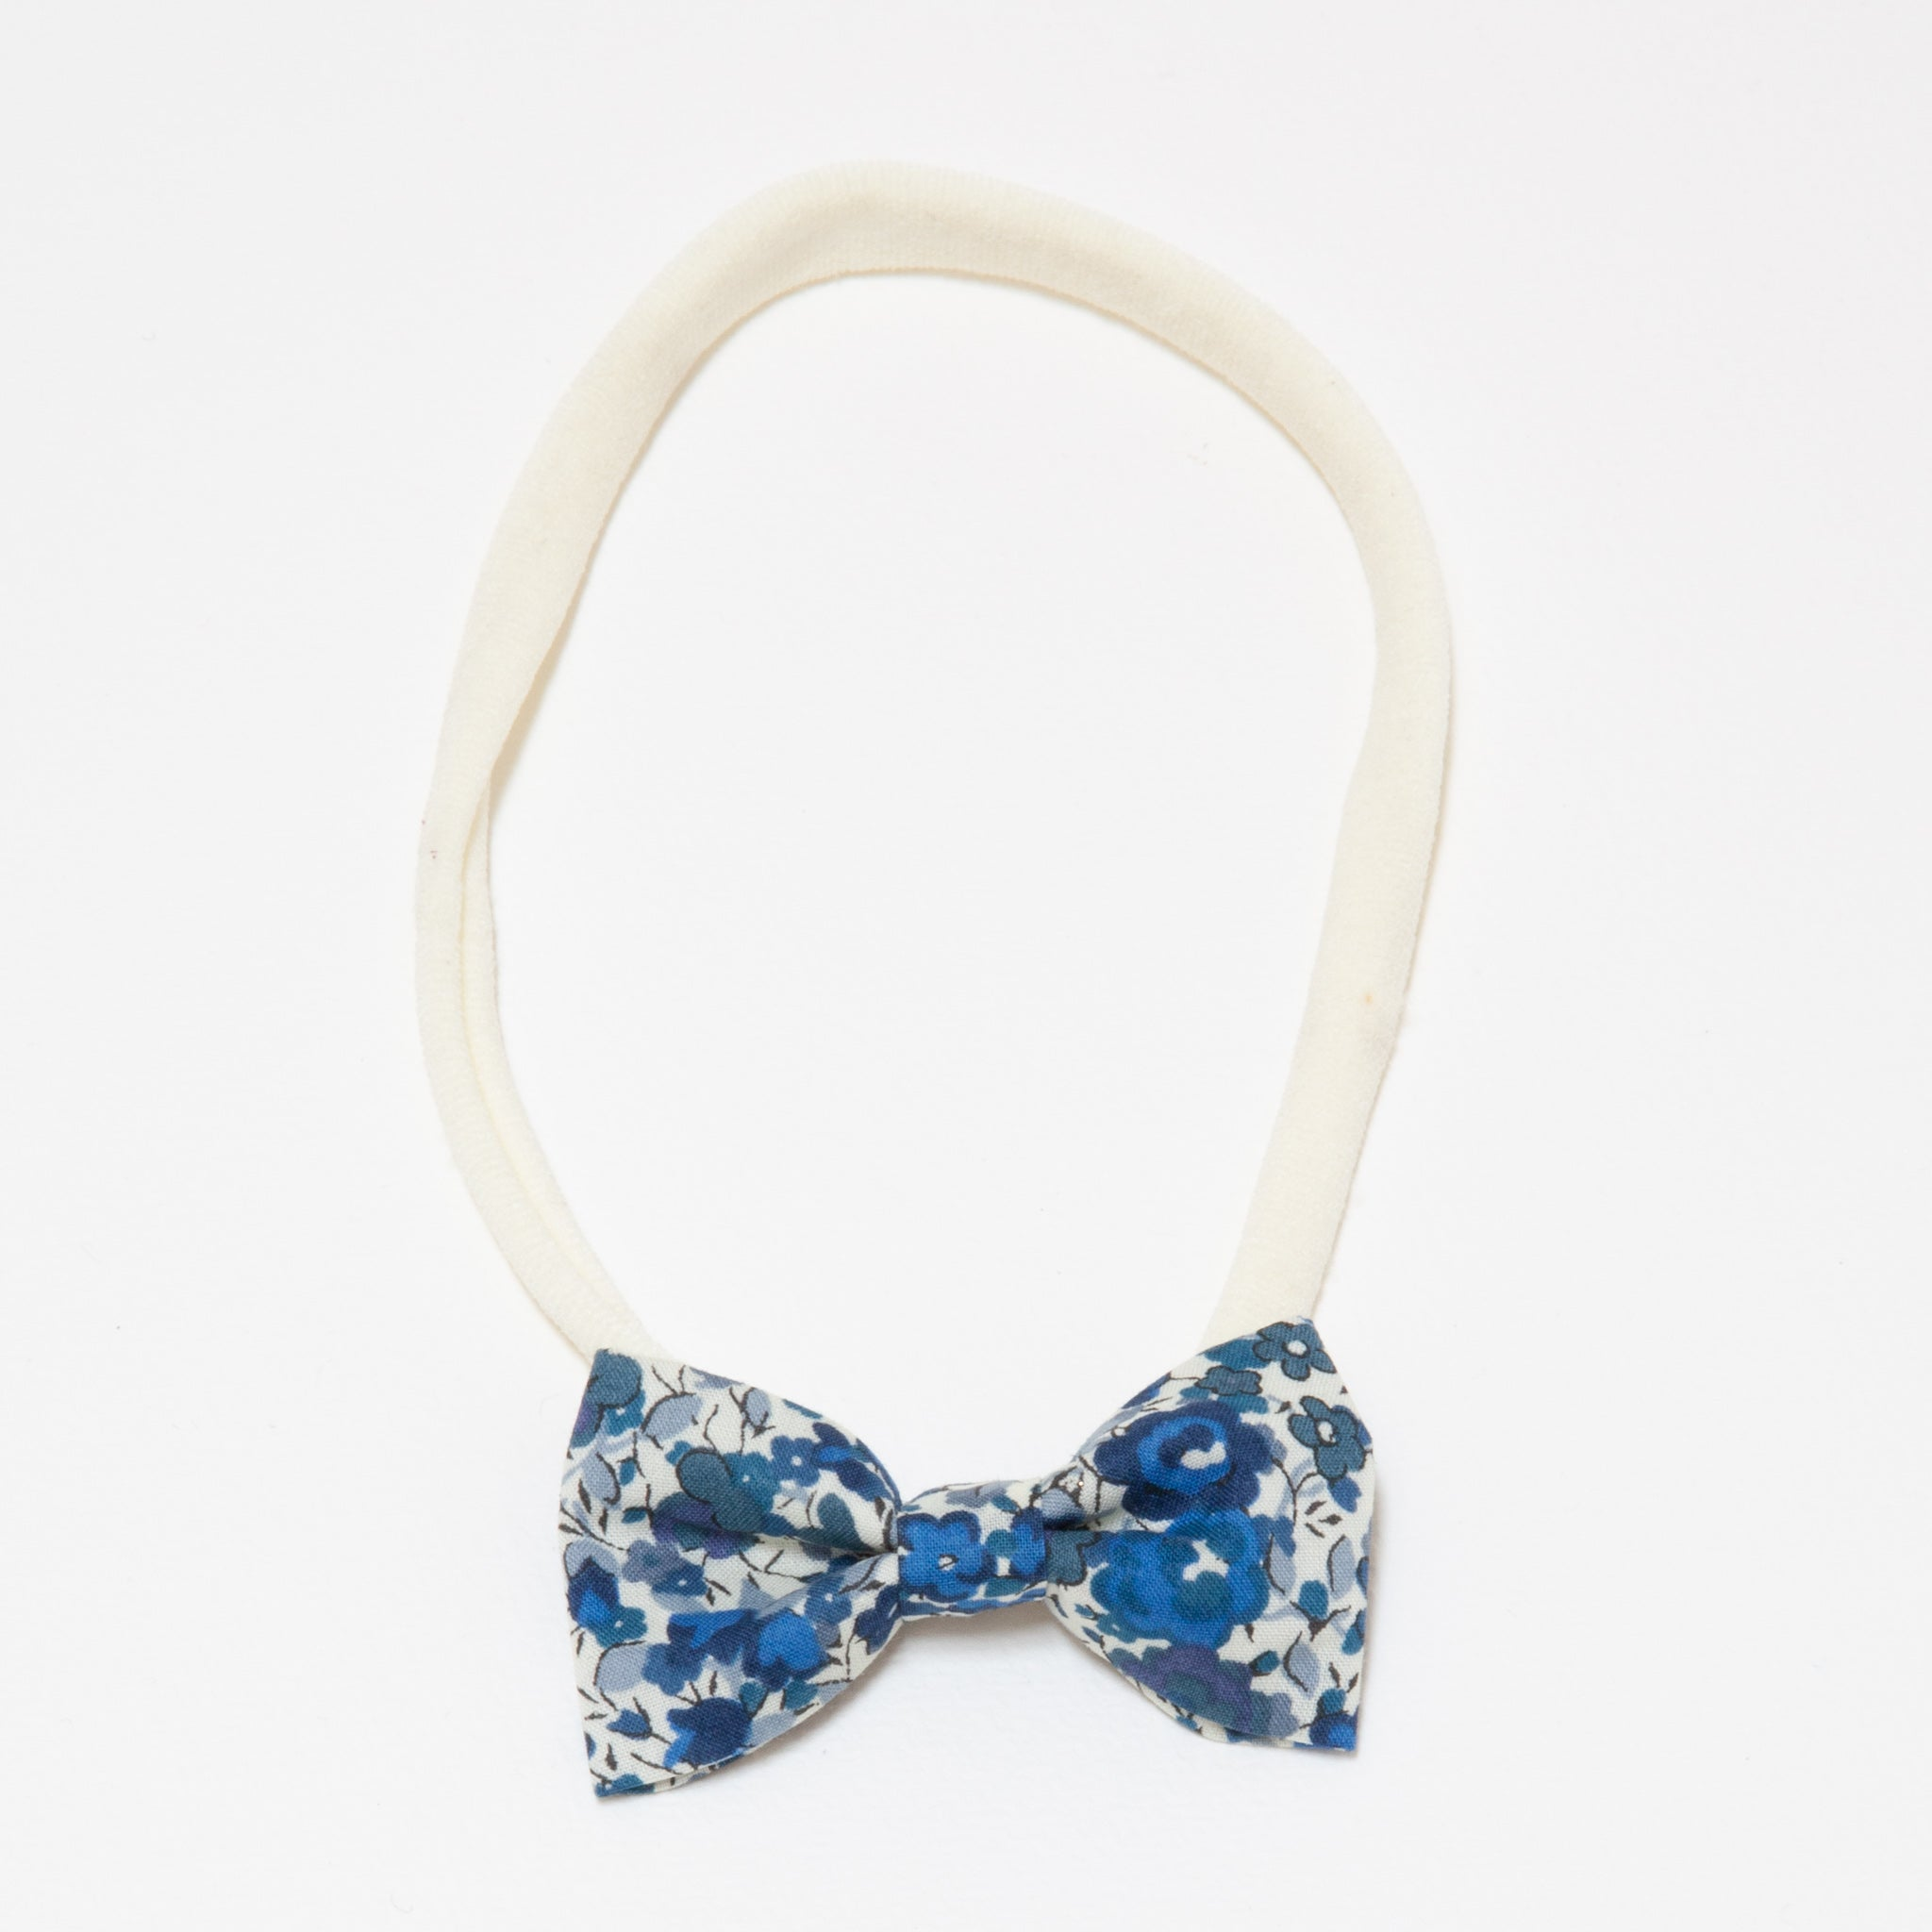 Minnie Headband Dark Blue Floral